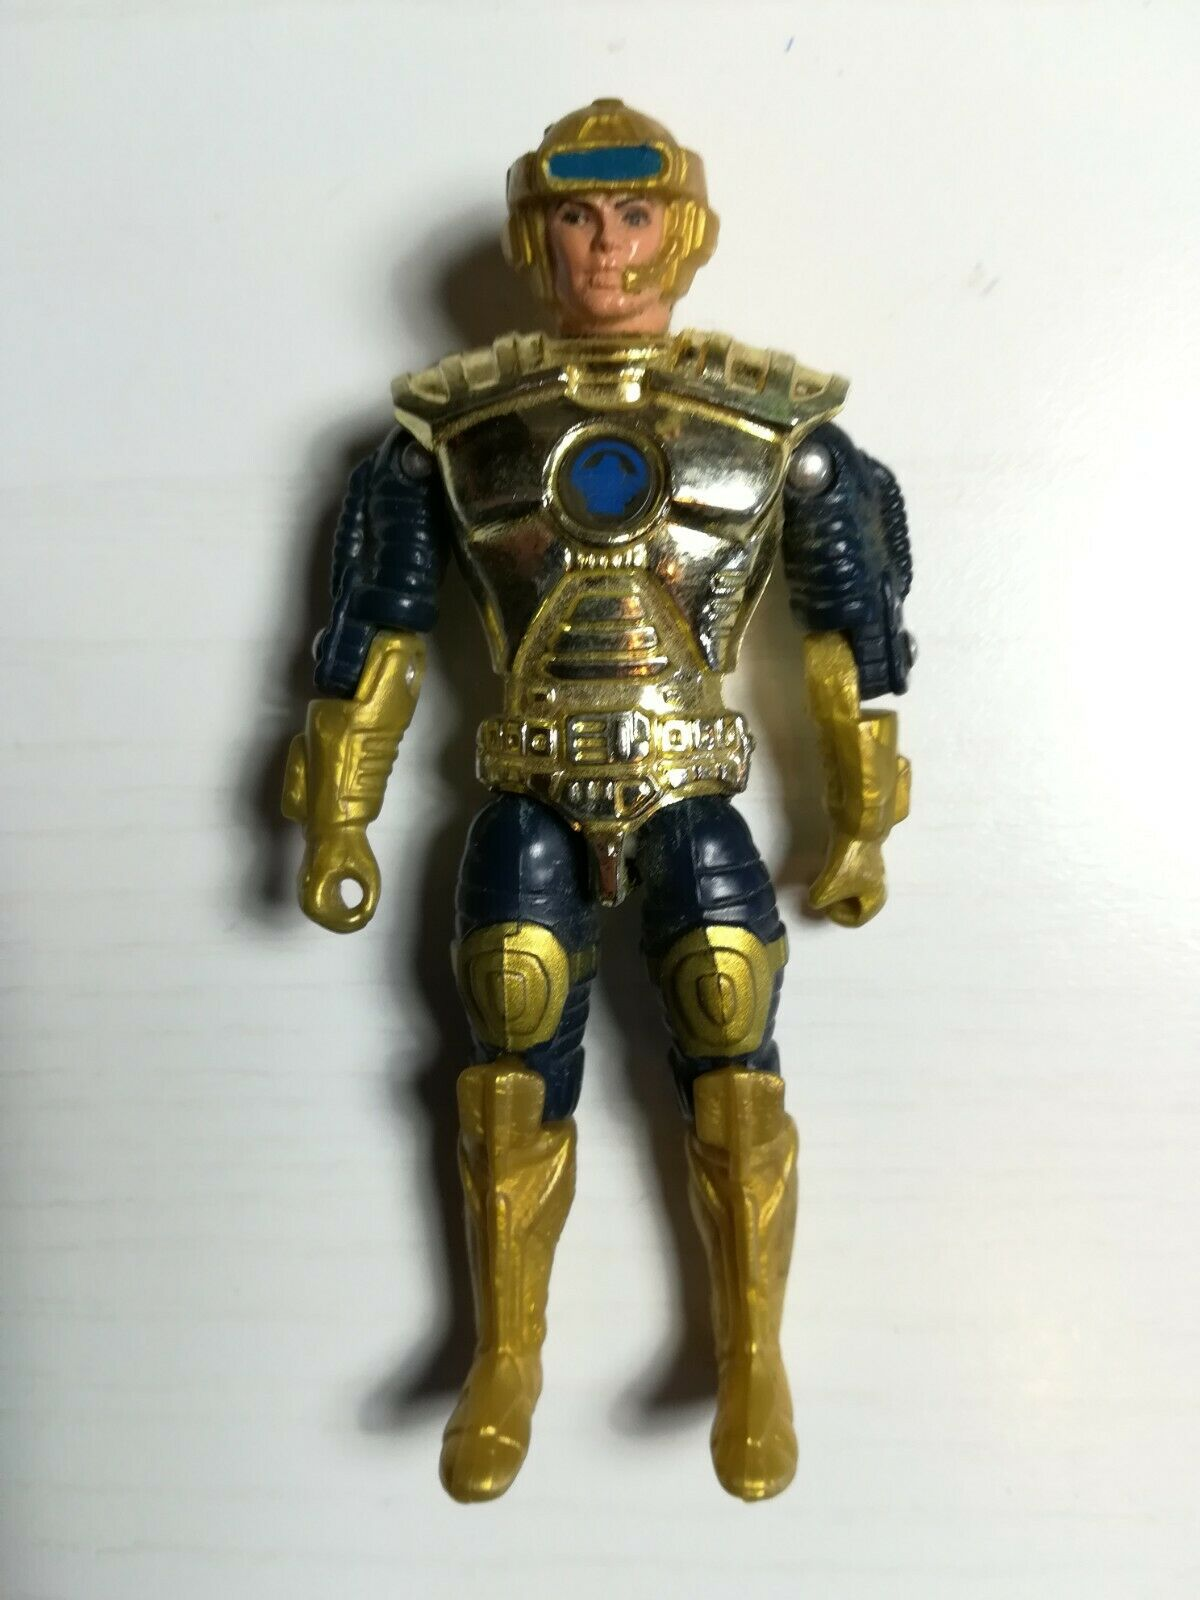 CAPTAIN POWER - Soldier Of The Future Future Future 3.5  Action Figure Mattel 1987 Vintage Toy 07e915